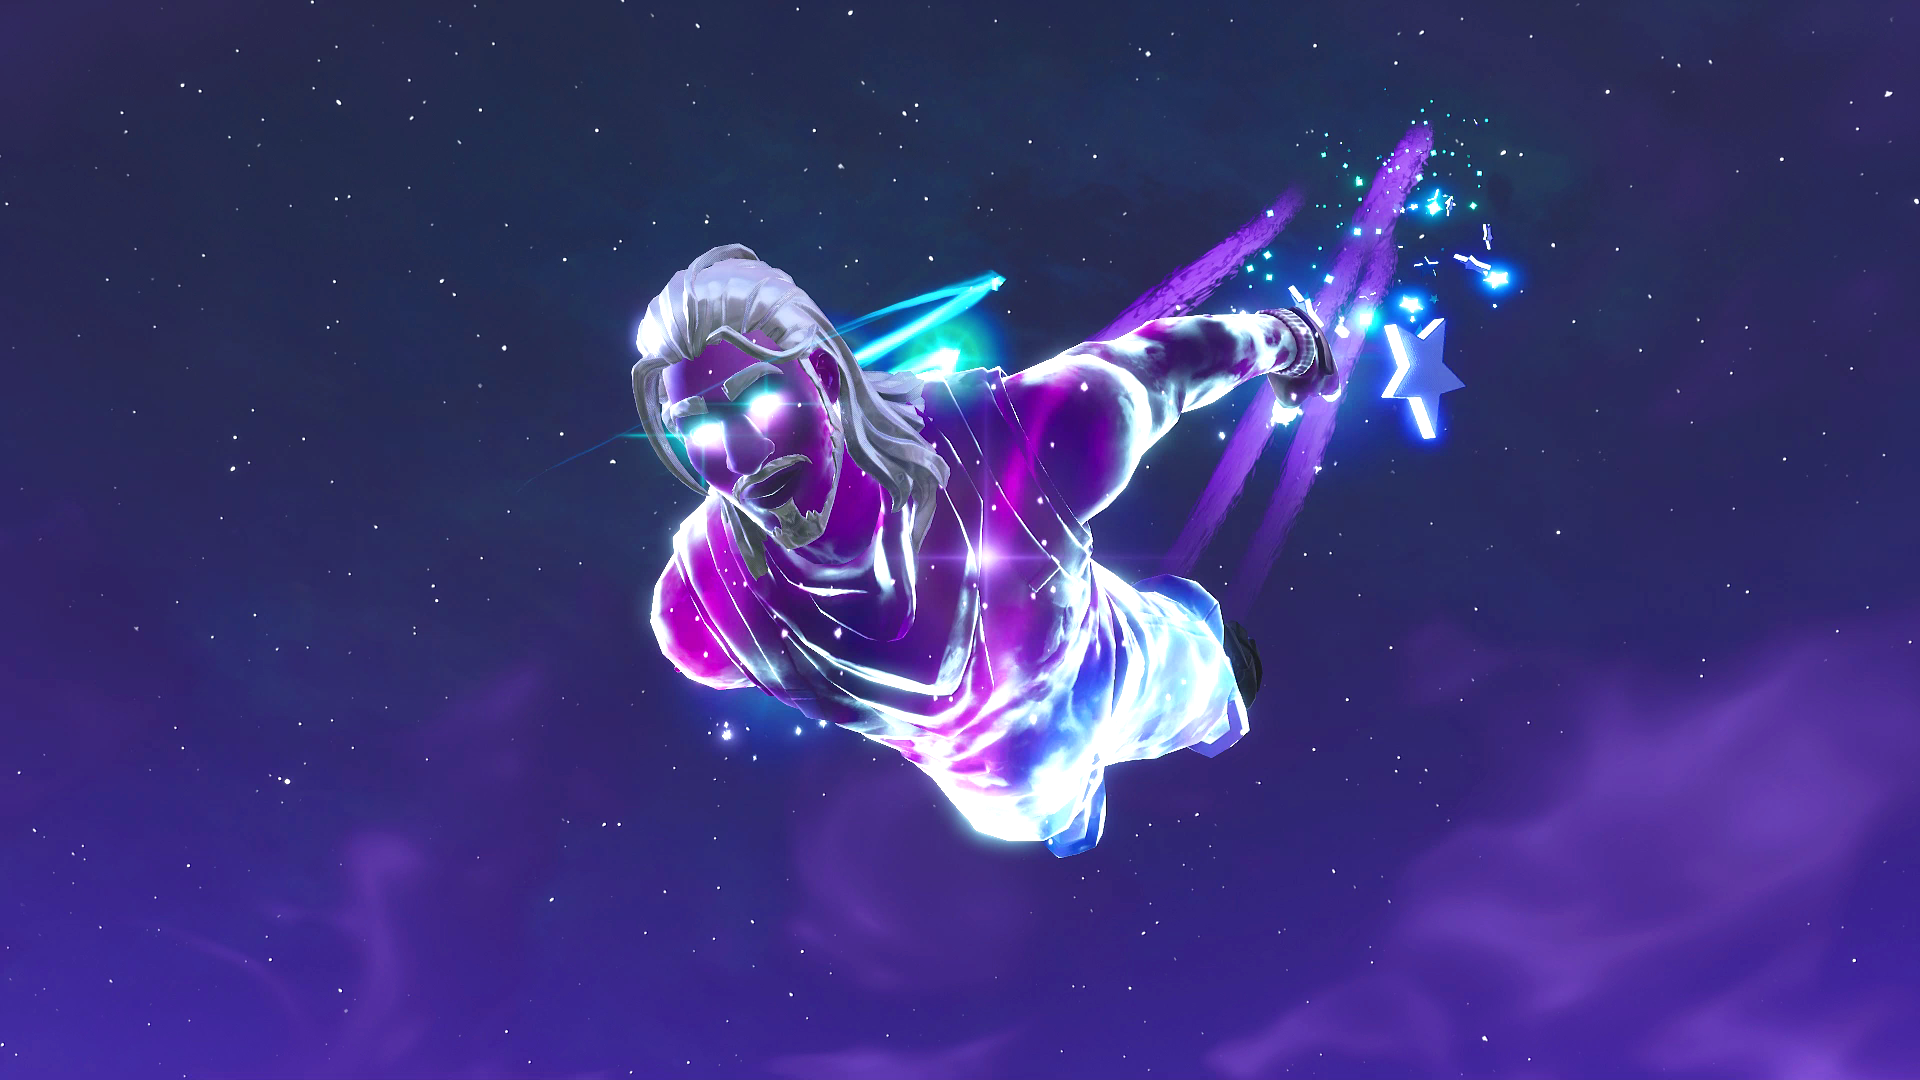 Fortnite Galaxy Background